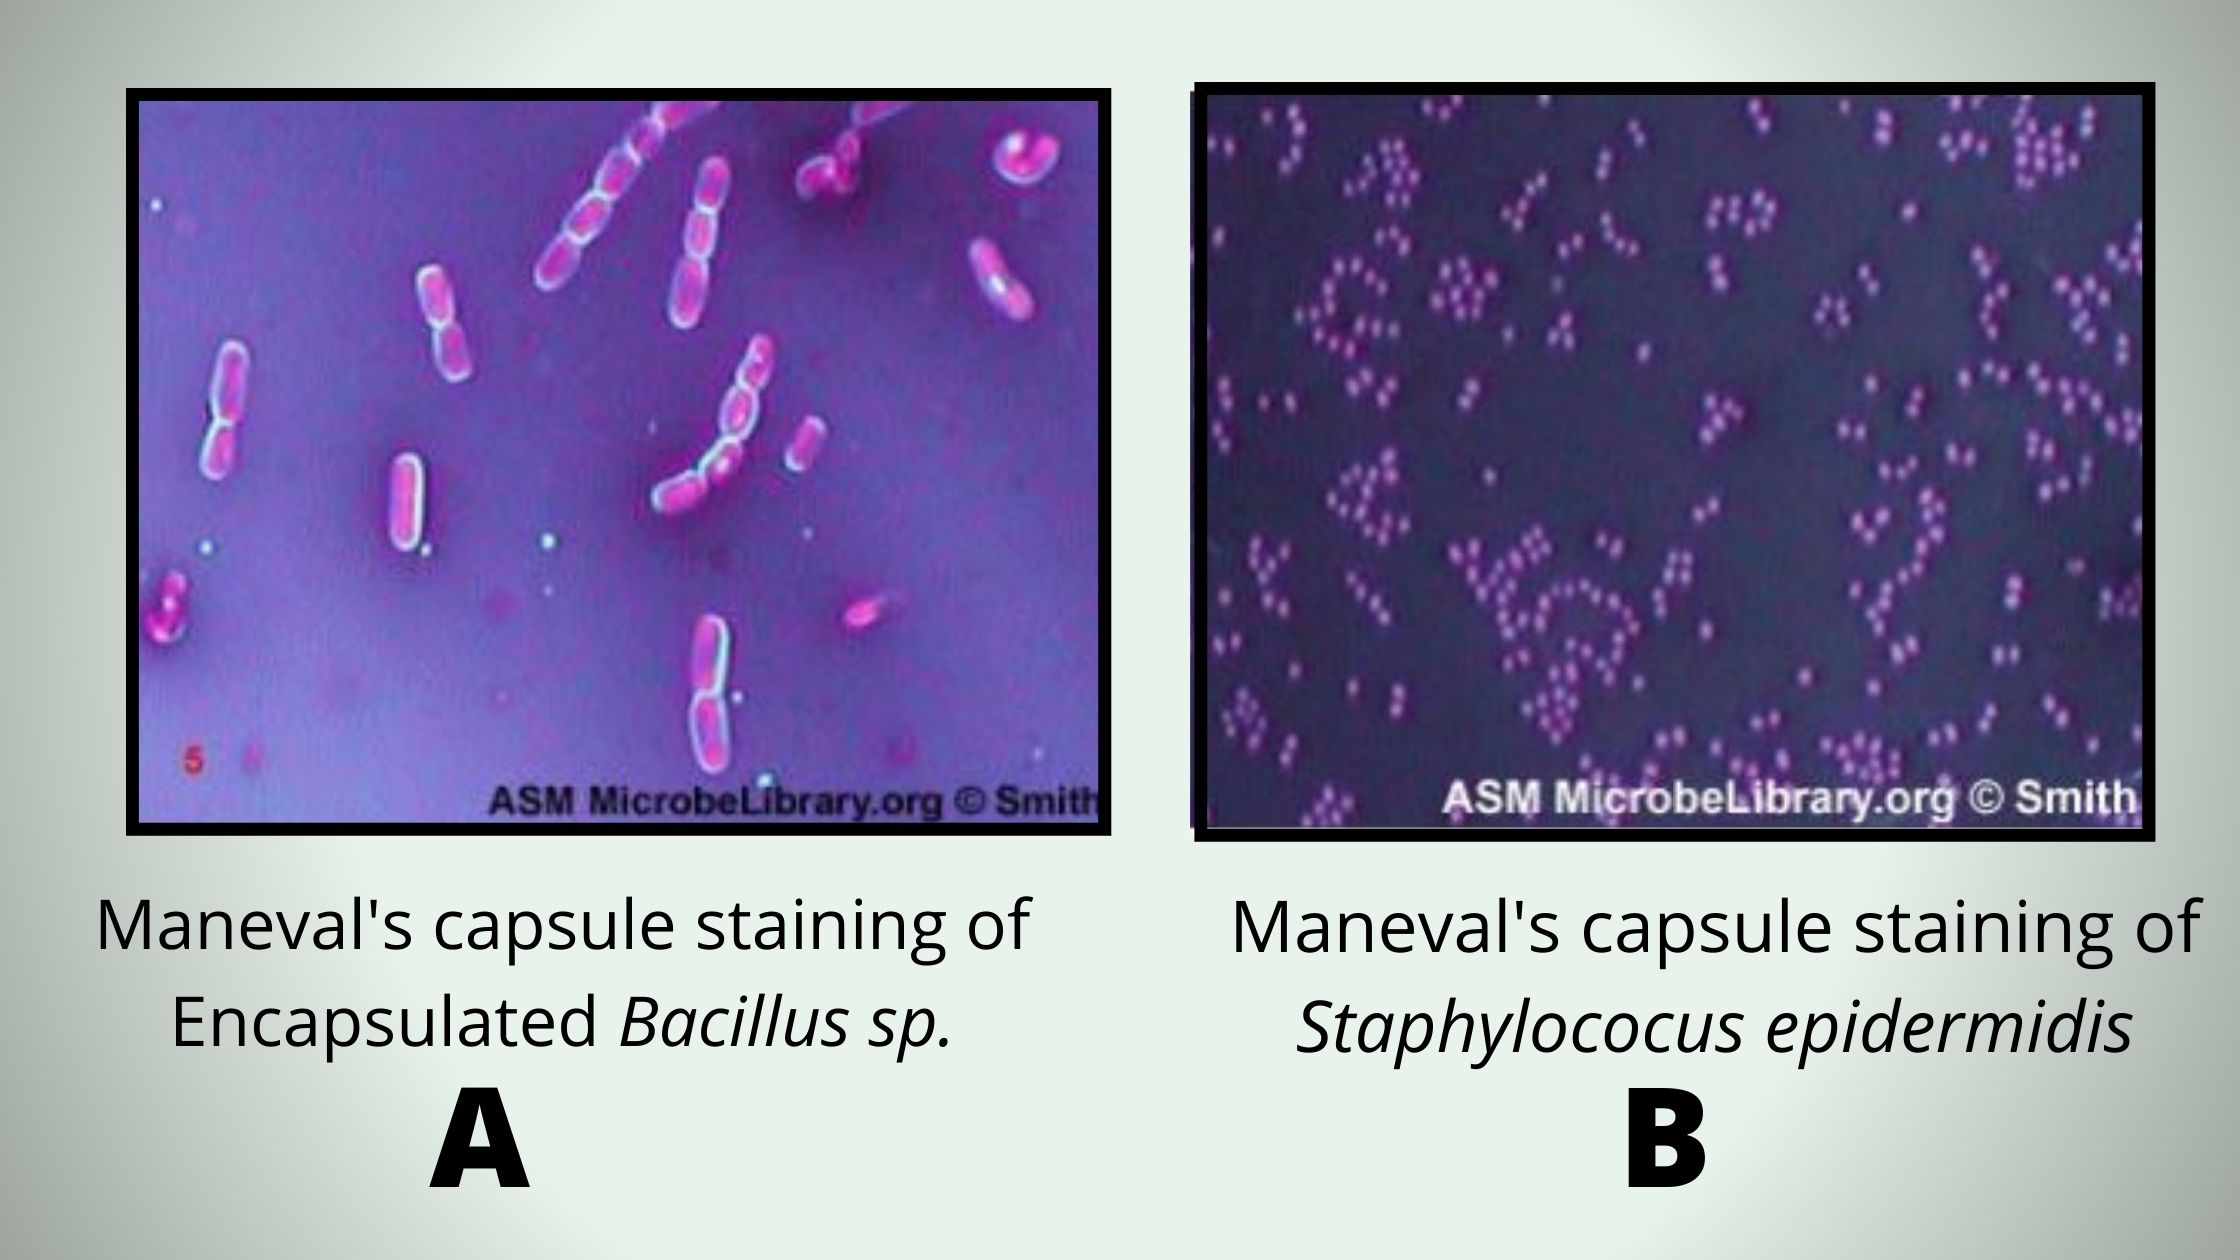 Maneval's capsule staining